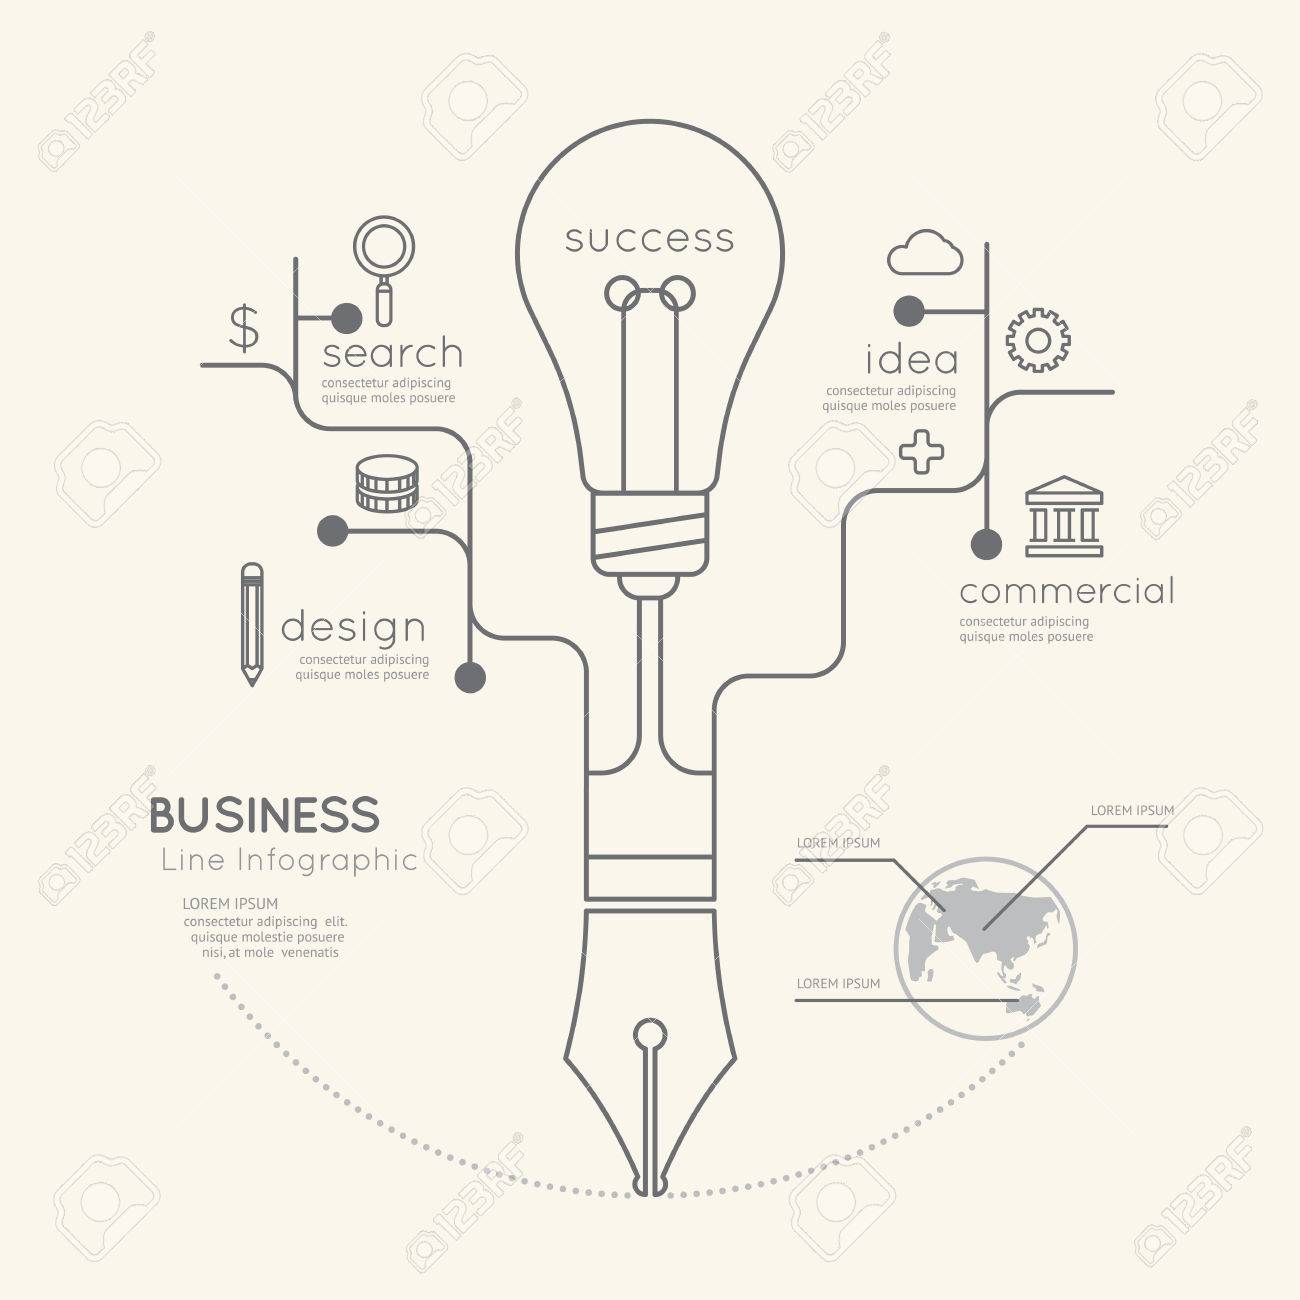 Flat Linear Infographic Business Education Pen Tree With Light Bulb Schematic Outline Conceptvector Illustration